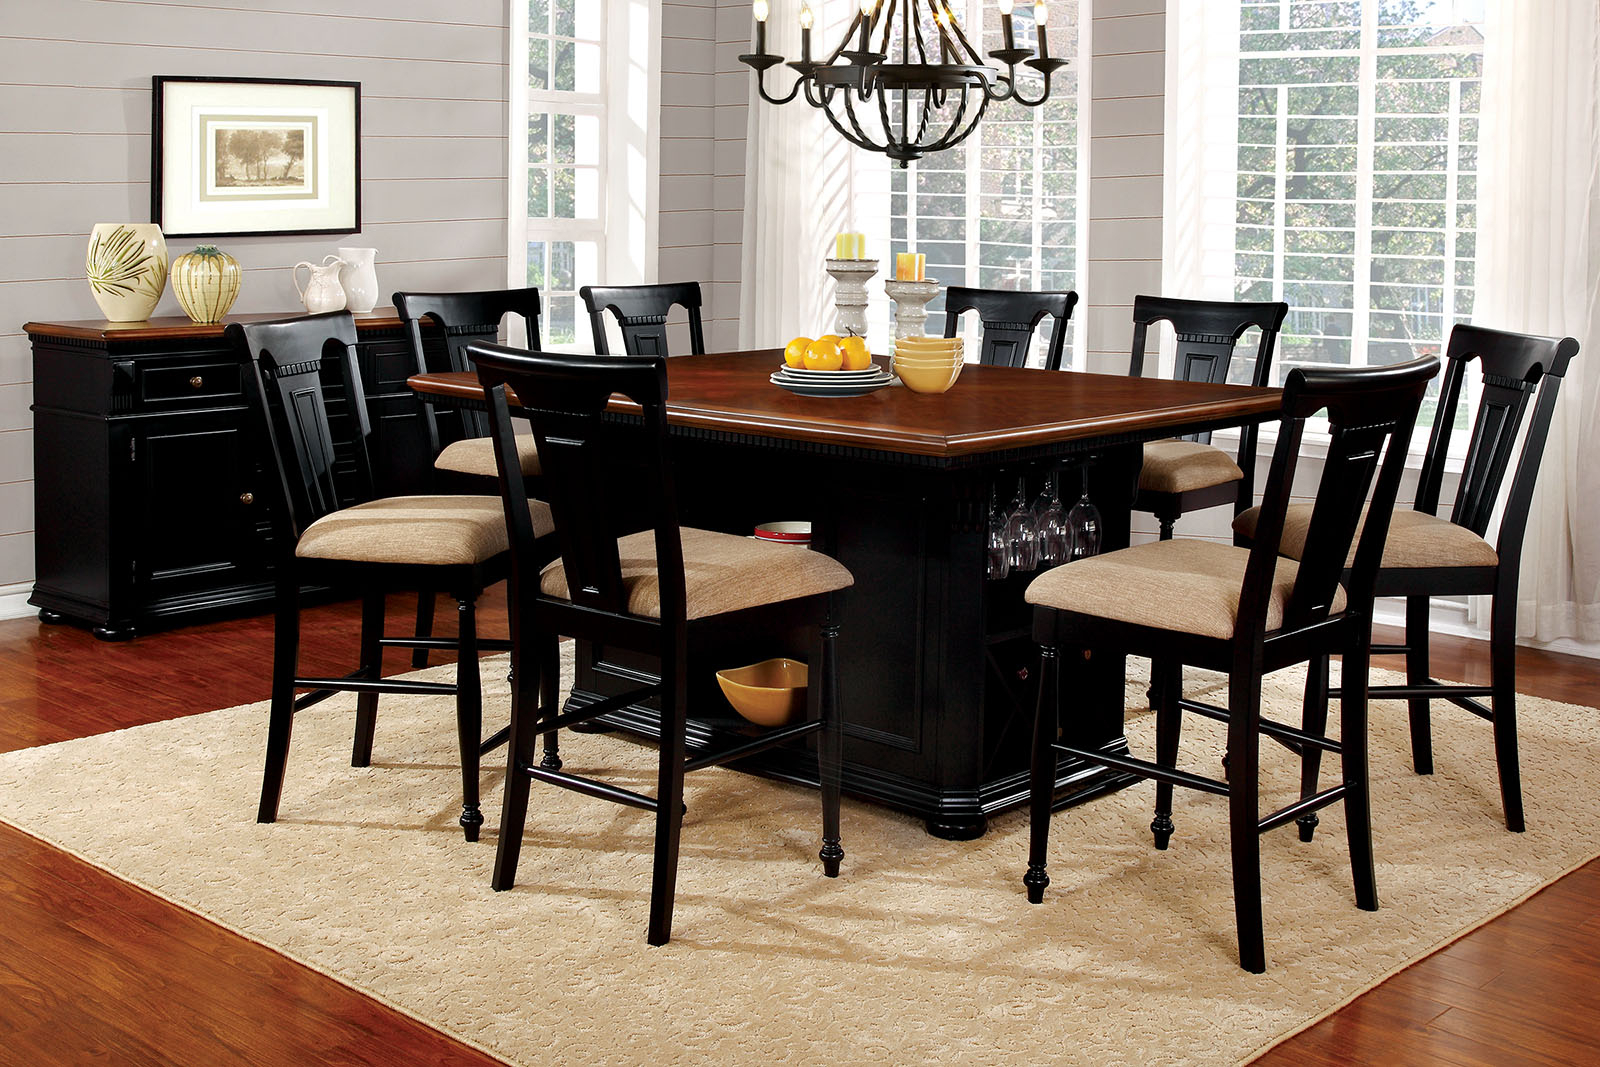 Most Recent Transitional 6 Seating Casual Dining Tables For Counter Height Dining Table And Chairs Aspiration 9Pcs (View 11 of 25)